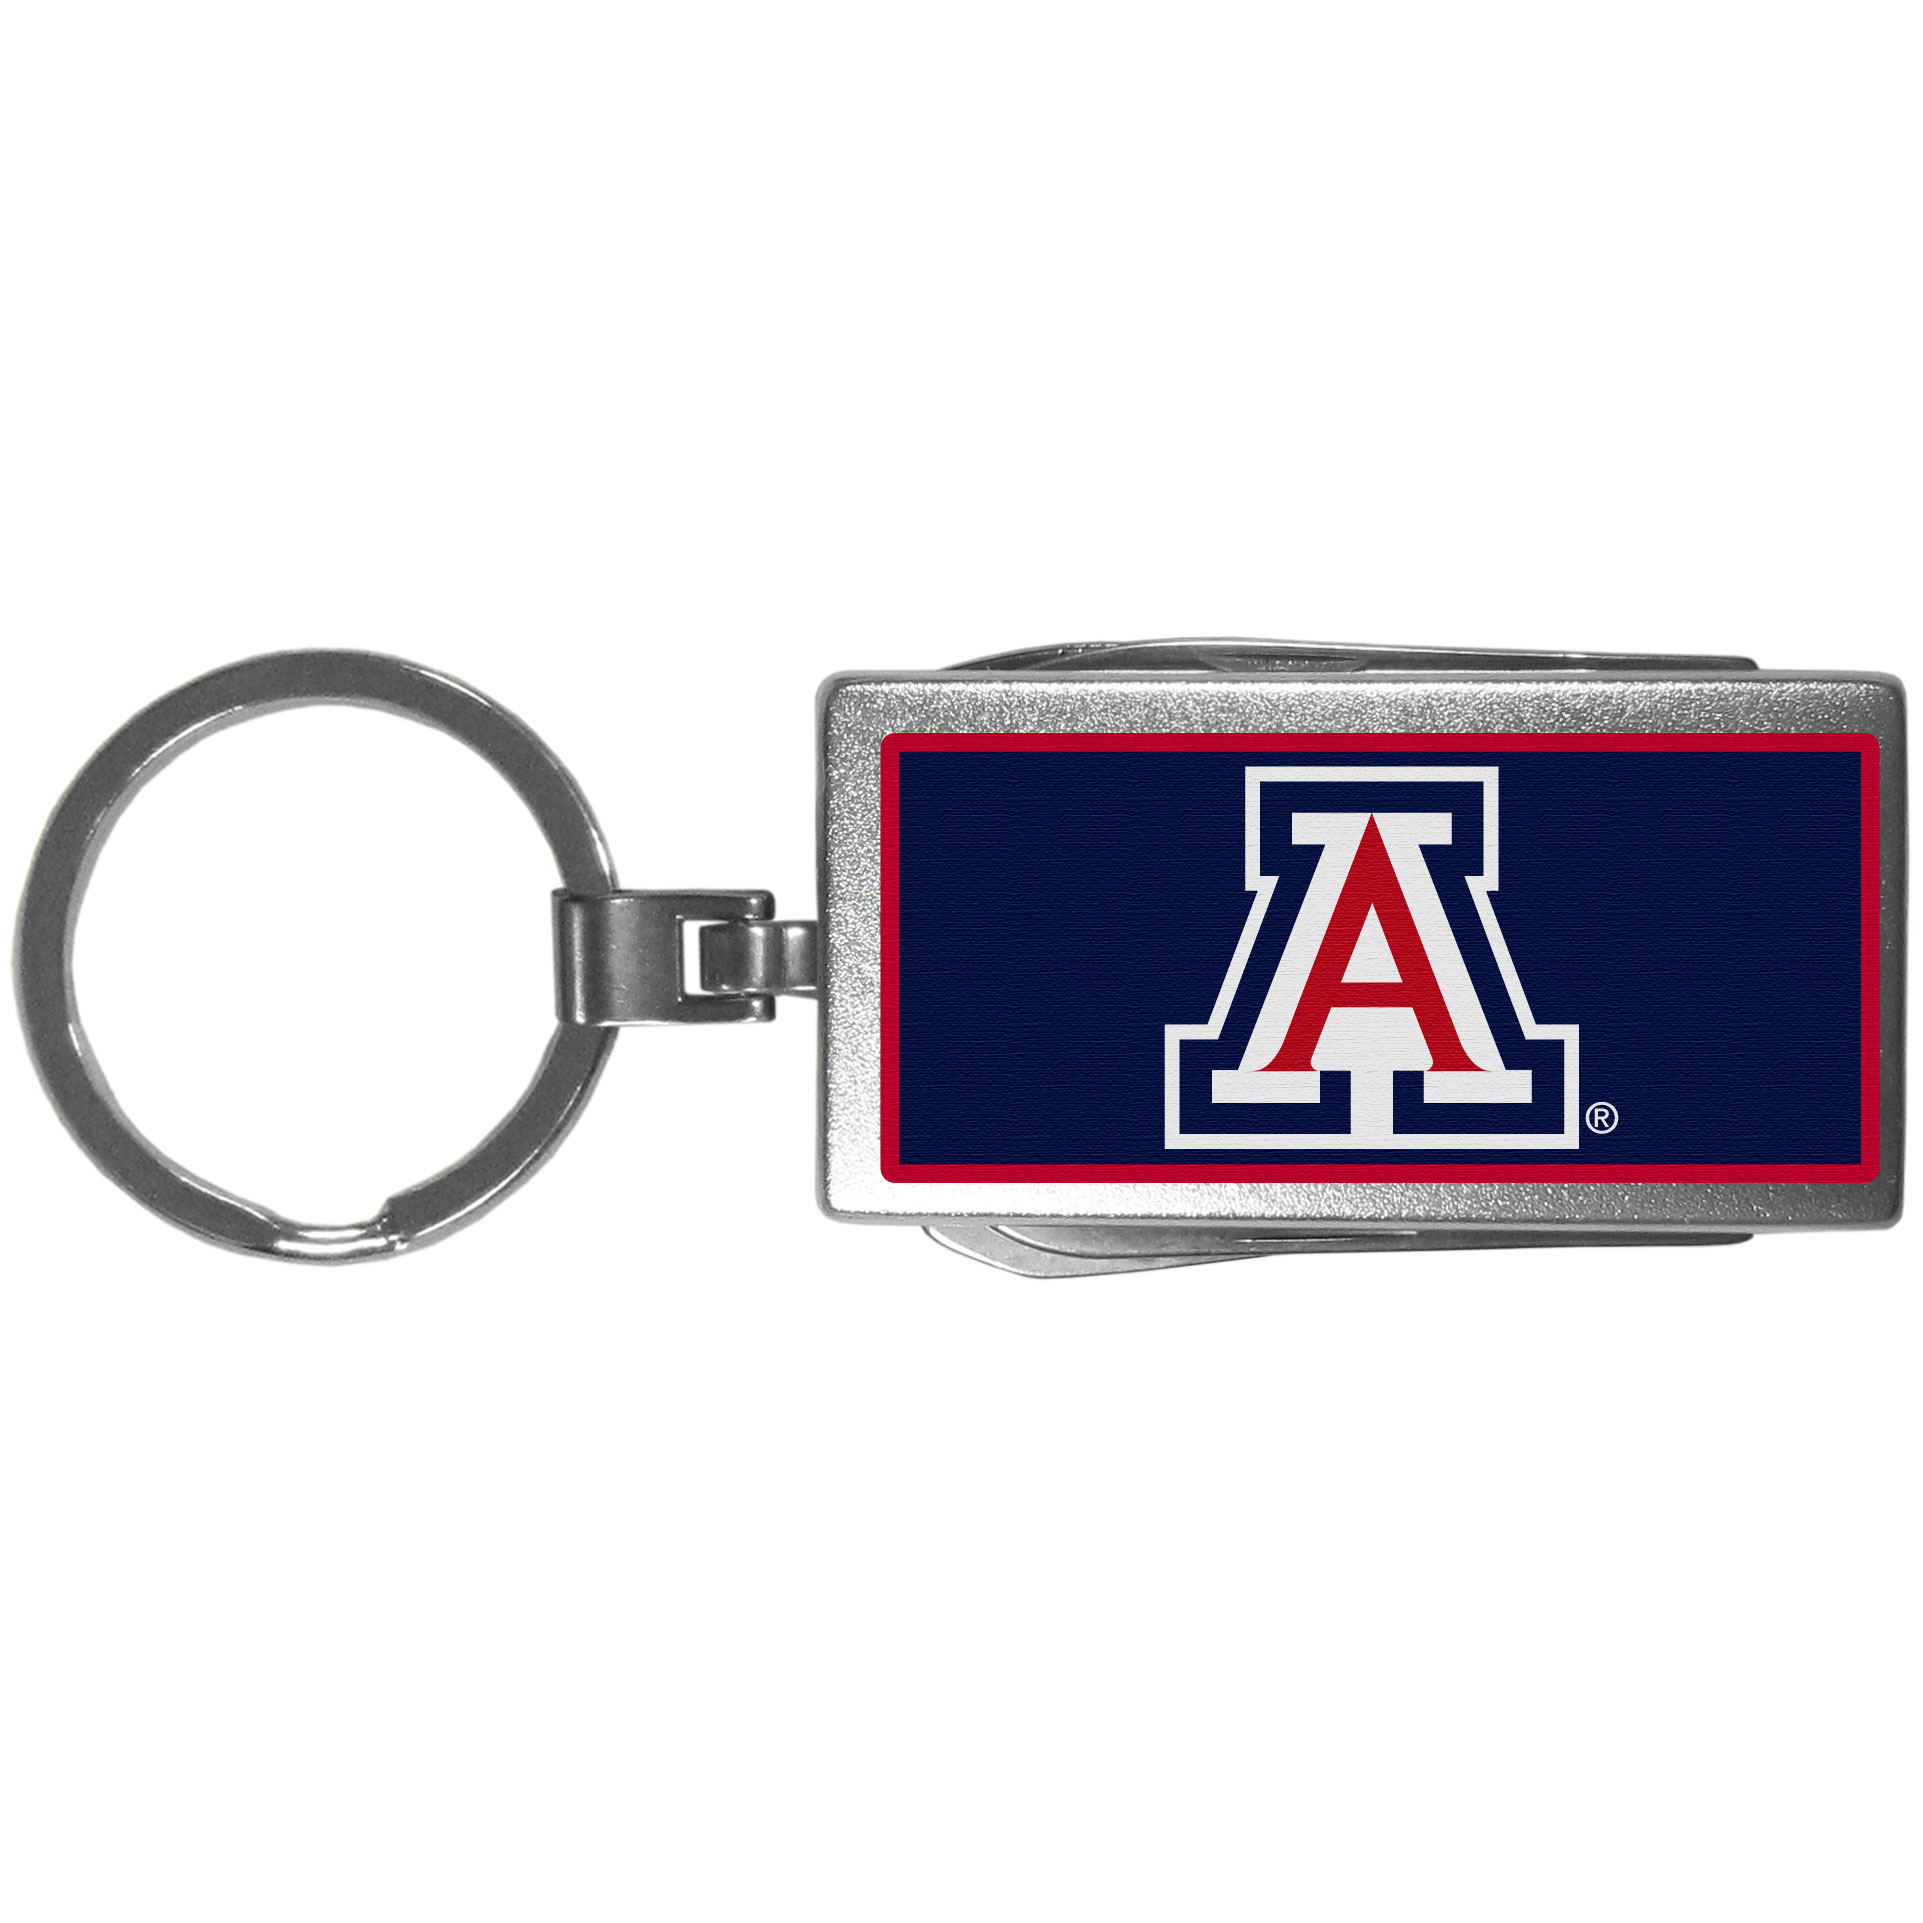 Arizona Wildcats Multi-tool Key Chain, Logo - Be the hero at the tailgate, camping, or on a Friday night with your Arizona Wildcats Multi-Tool Keychain which comes complete with bottle opener, scissors, knife, nail file and screw driver. Be it opening a package or a beverage Siskiyou's Multi-Tool Keychain goes wherever your keys do. The keychain hangs at 4 inches long when closed.